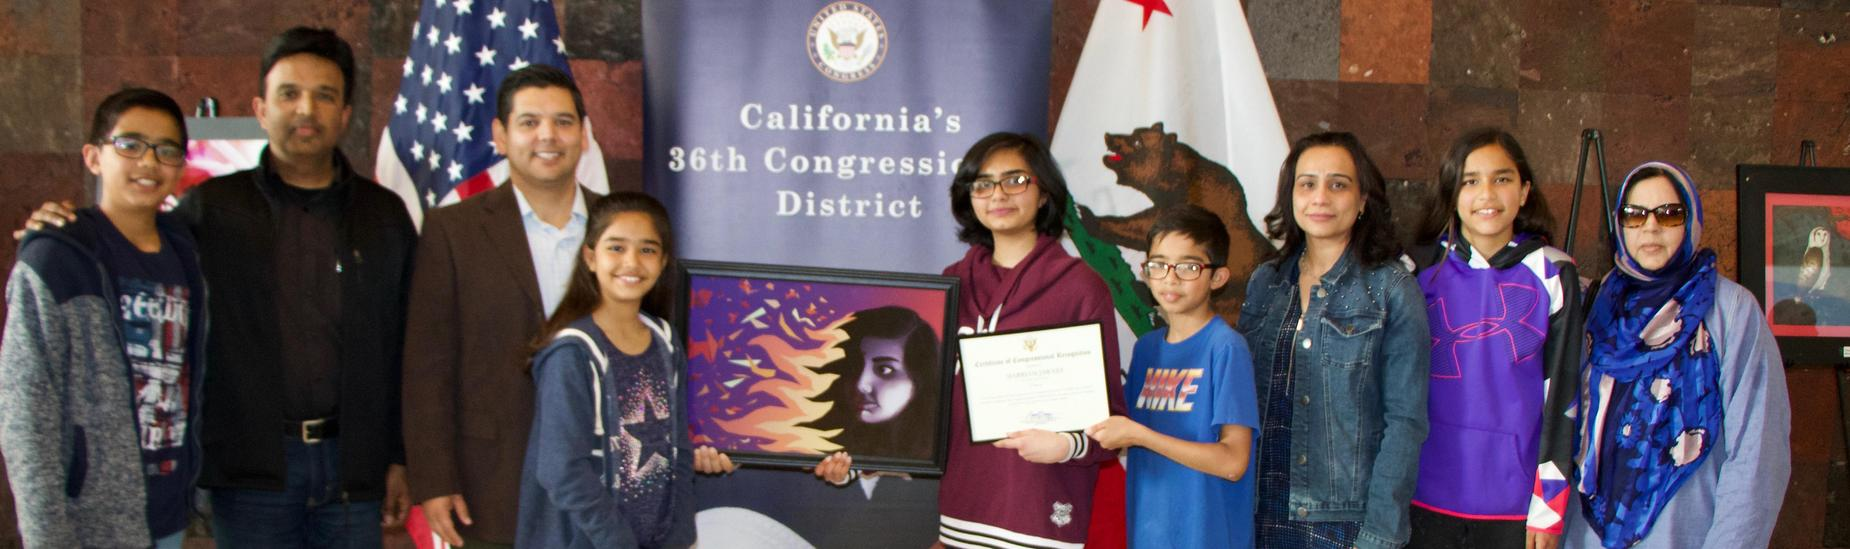 Student Wins Congressional Art Contest with Family and Congressman